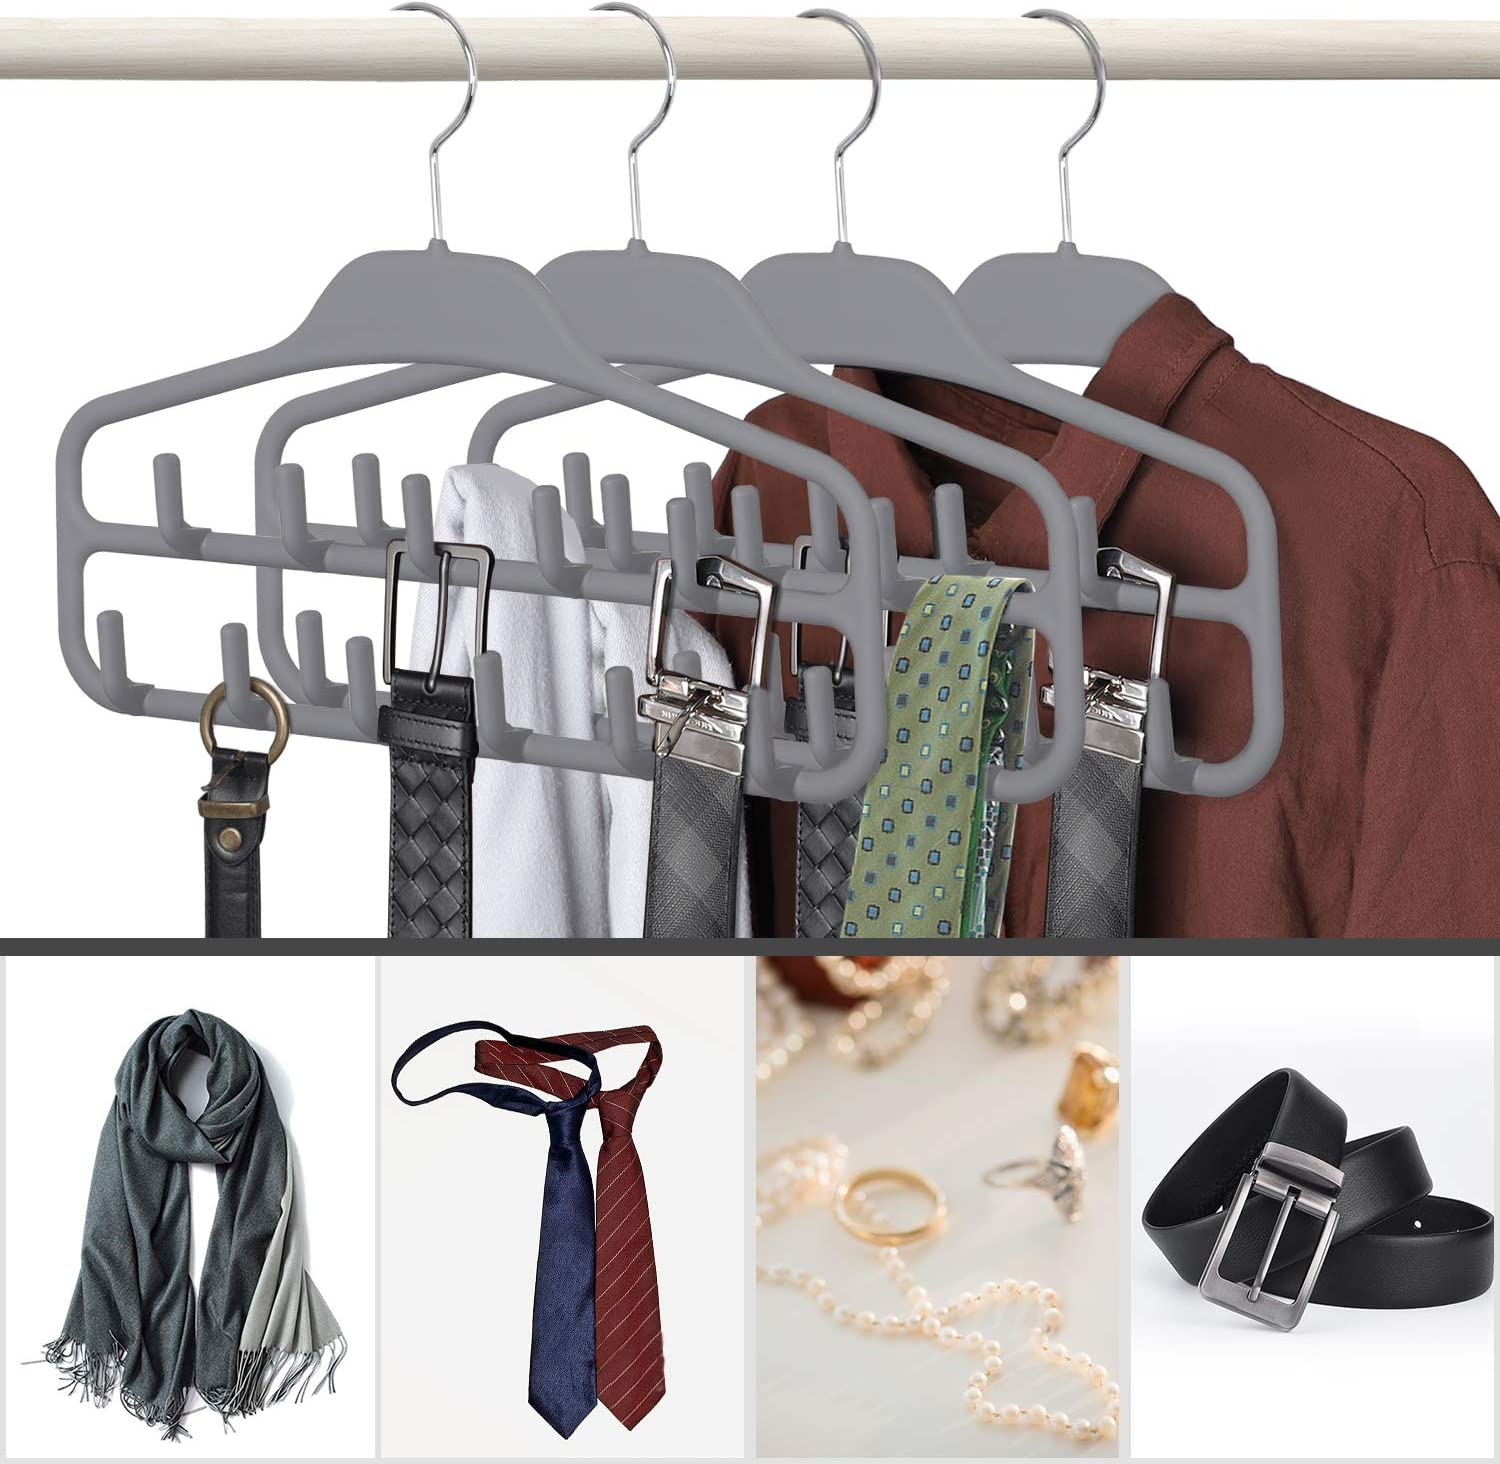 360 Degree Rotating Tie Rack with Hooks SMARTAKE Belt Hanger Bundle with SMARTAKE Scarf Hanger Bow Tie Scarves Non-Slip Durable Hanging Closet Organizer Accessories Holder for Leather Belt